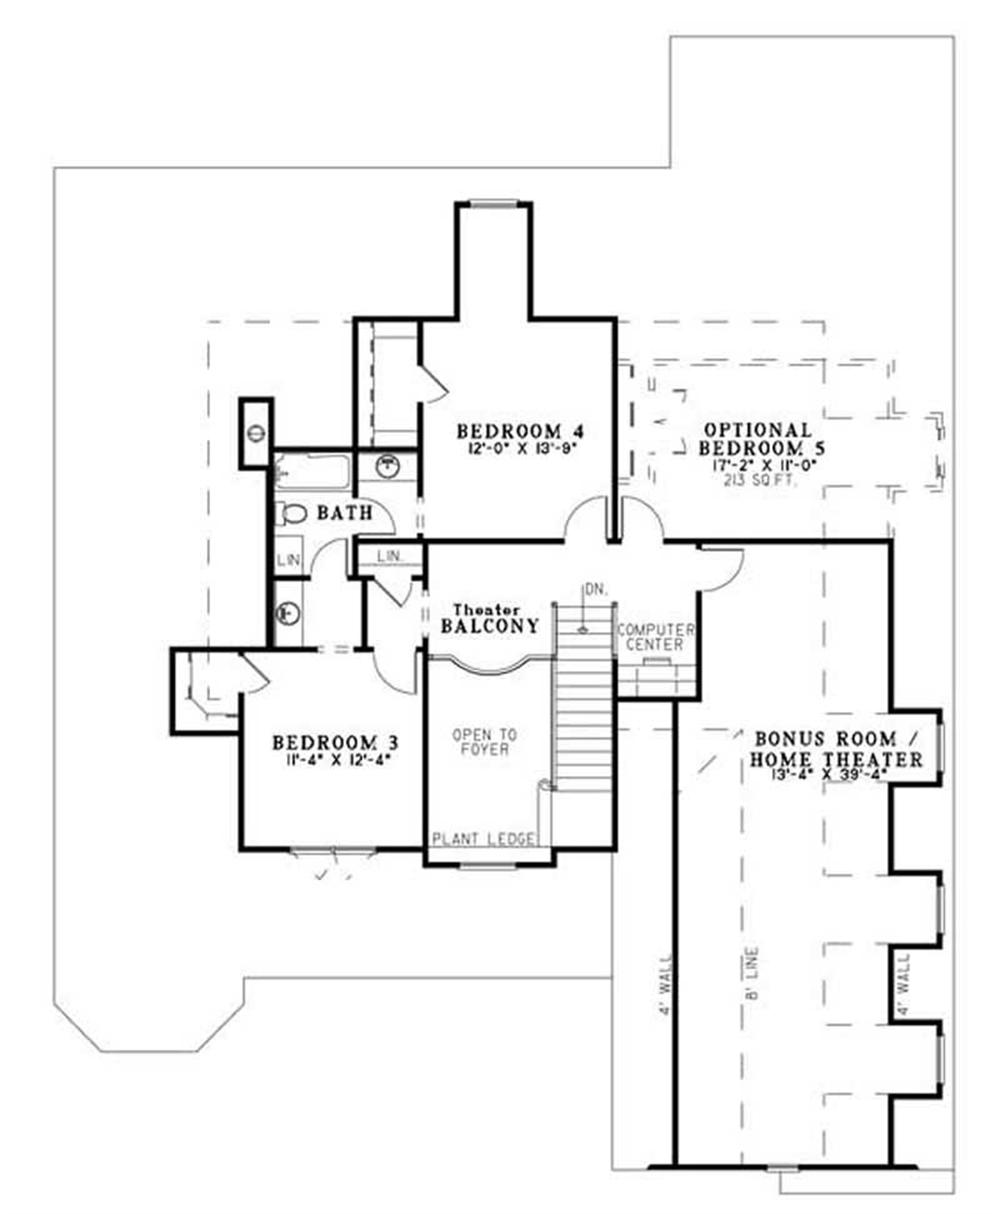 NDG-957 HOUSE PLAN